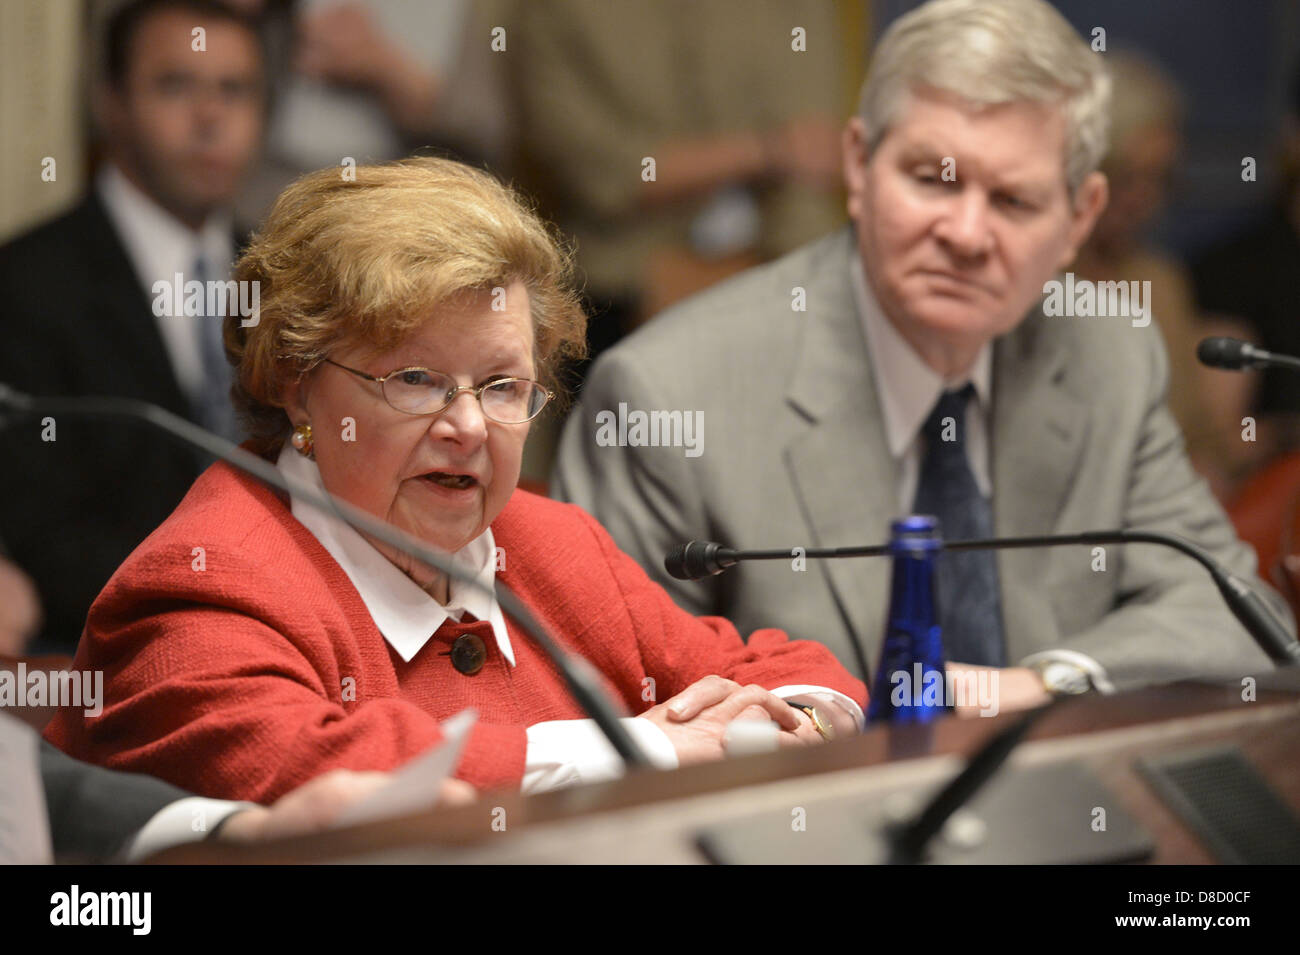 US Senate Appropriations Committee Chairwoman Senator Barbara Mikulski hosts Secretary Chuck Hagel and Veterans - Stock Image